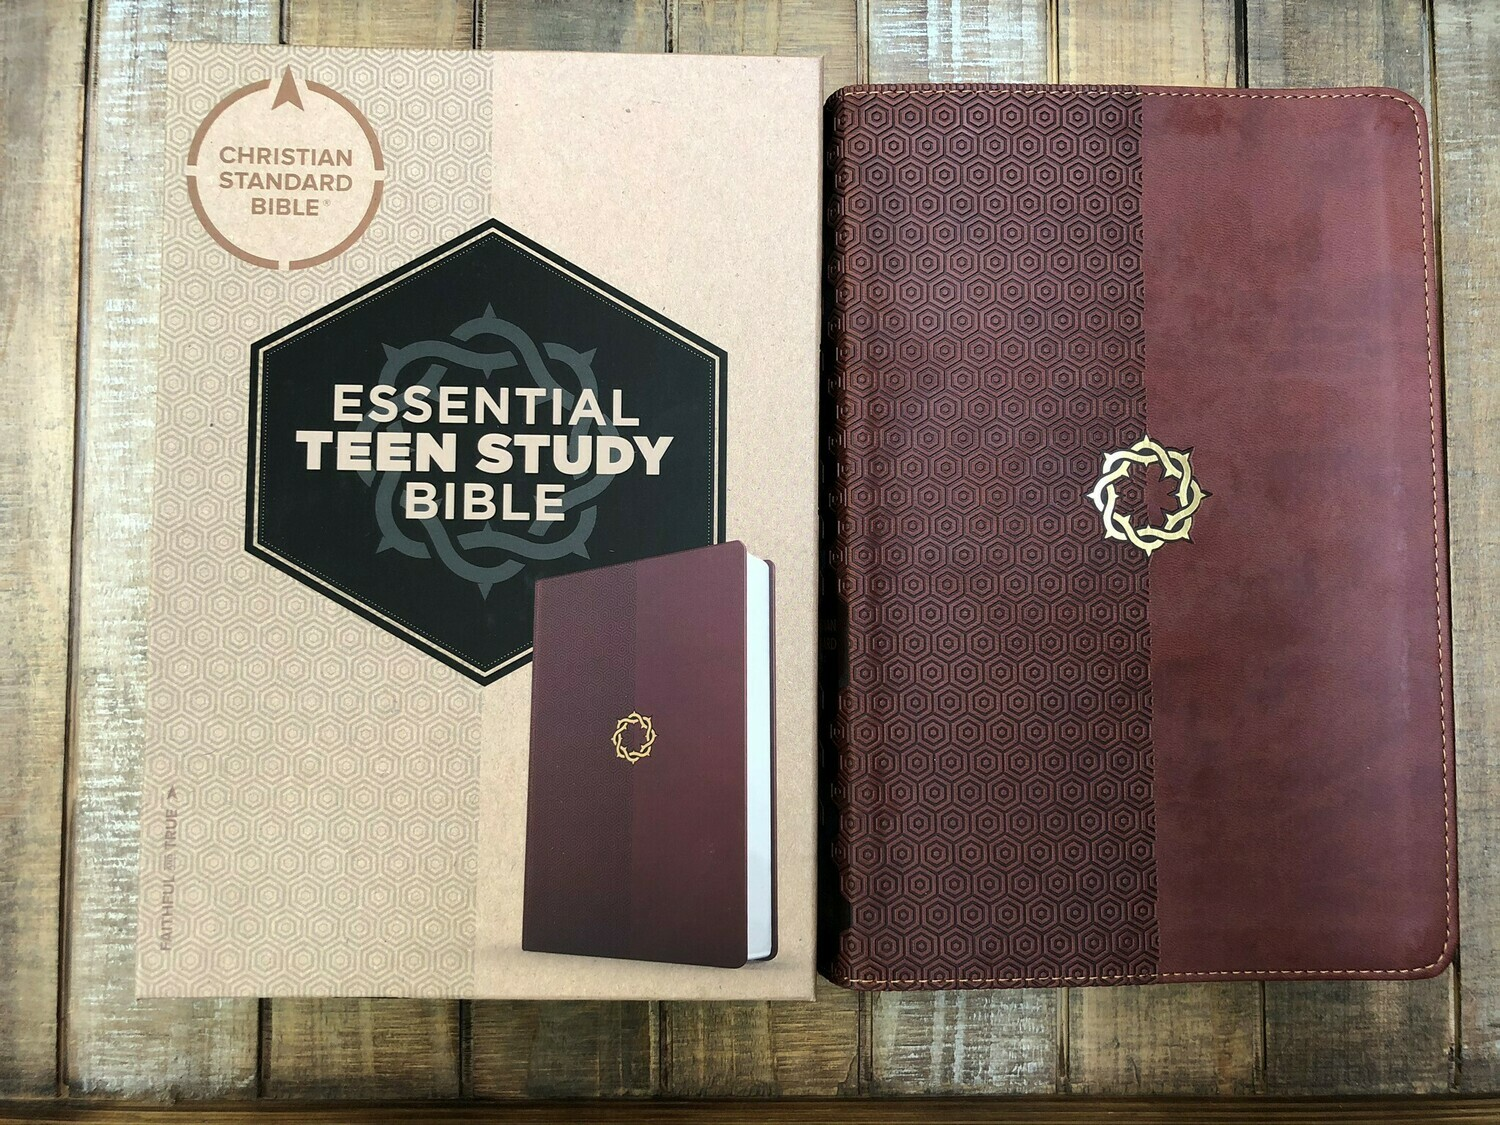 CSB Essential Teen Study Bible